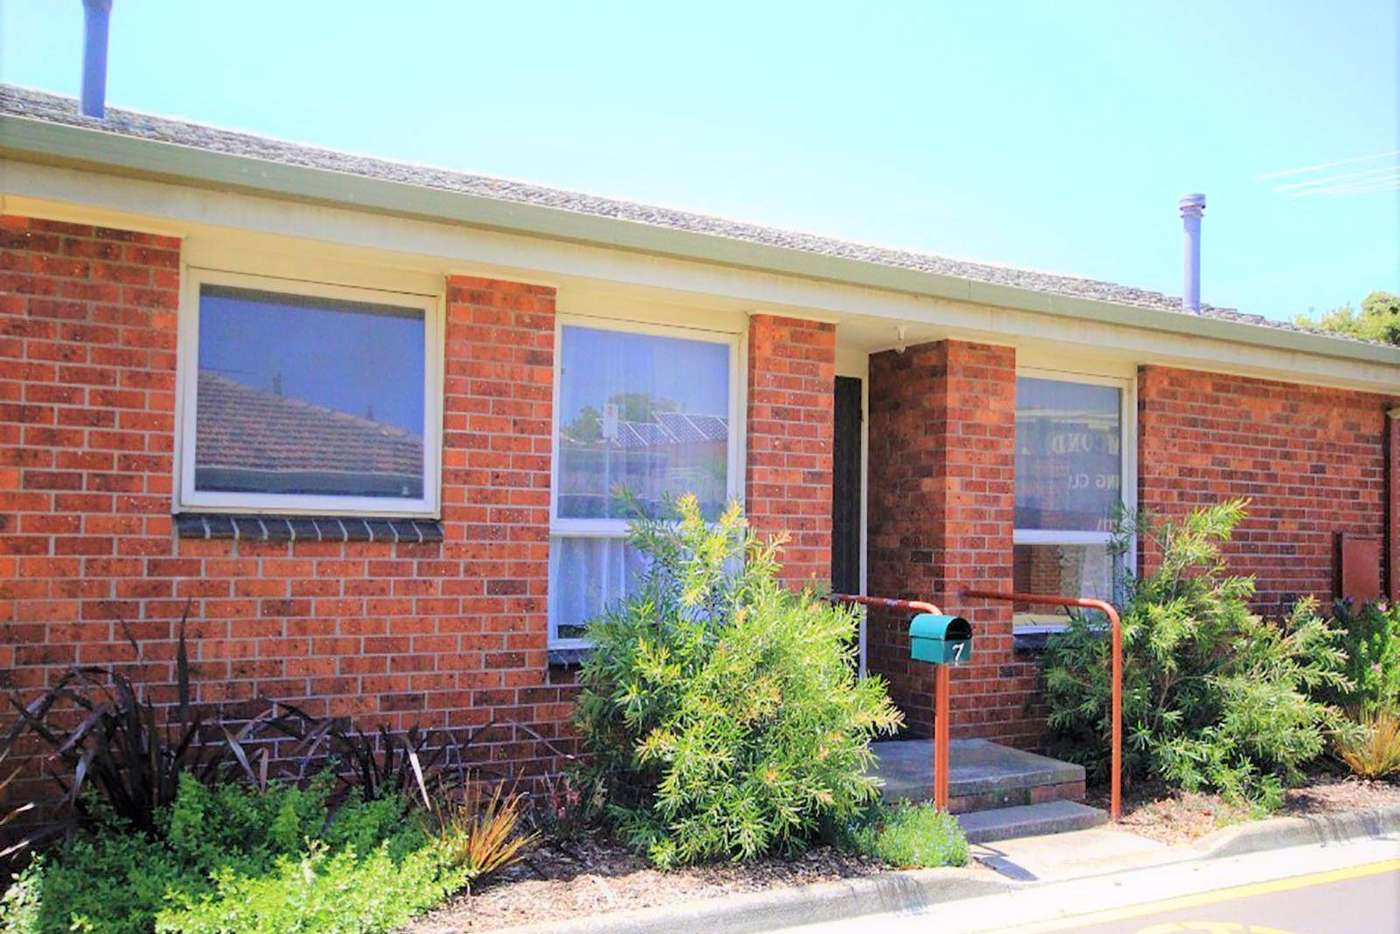 Main view of Homely house listing, 7 Glenleith Court, Geelong VIC 3220